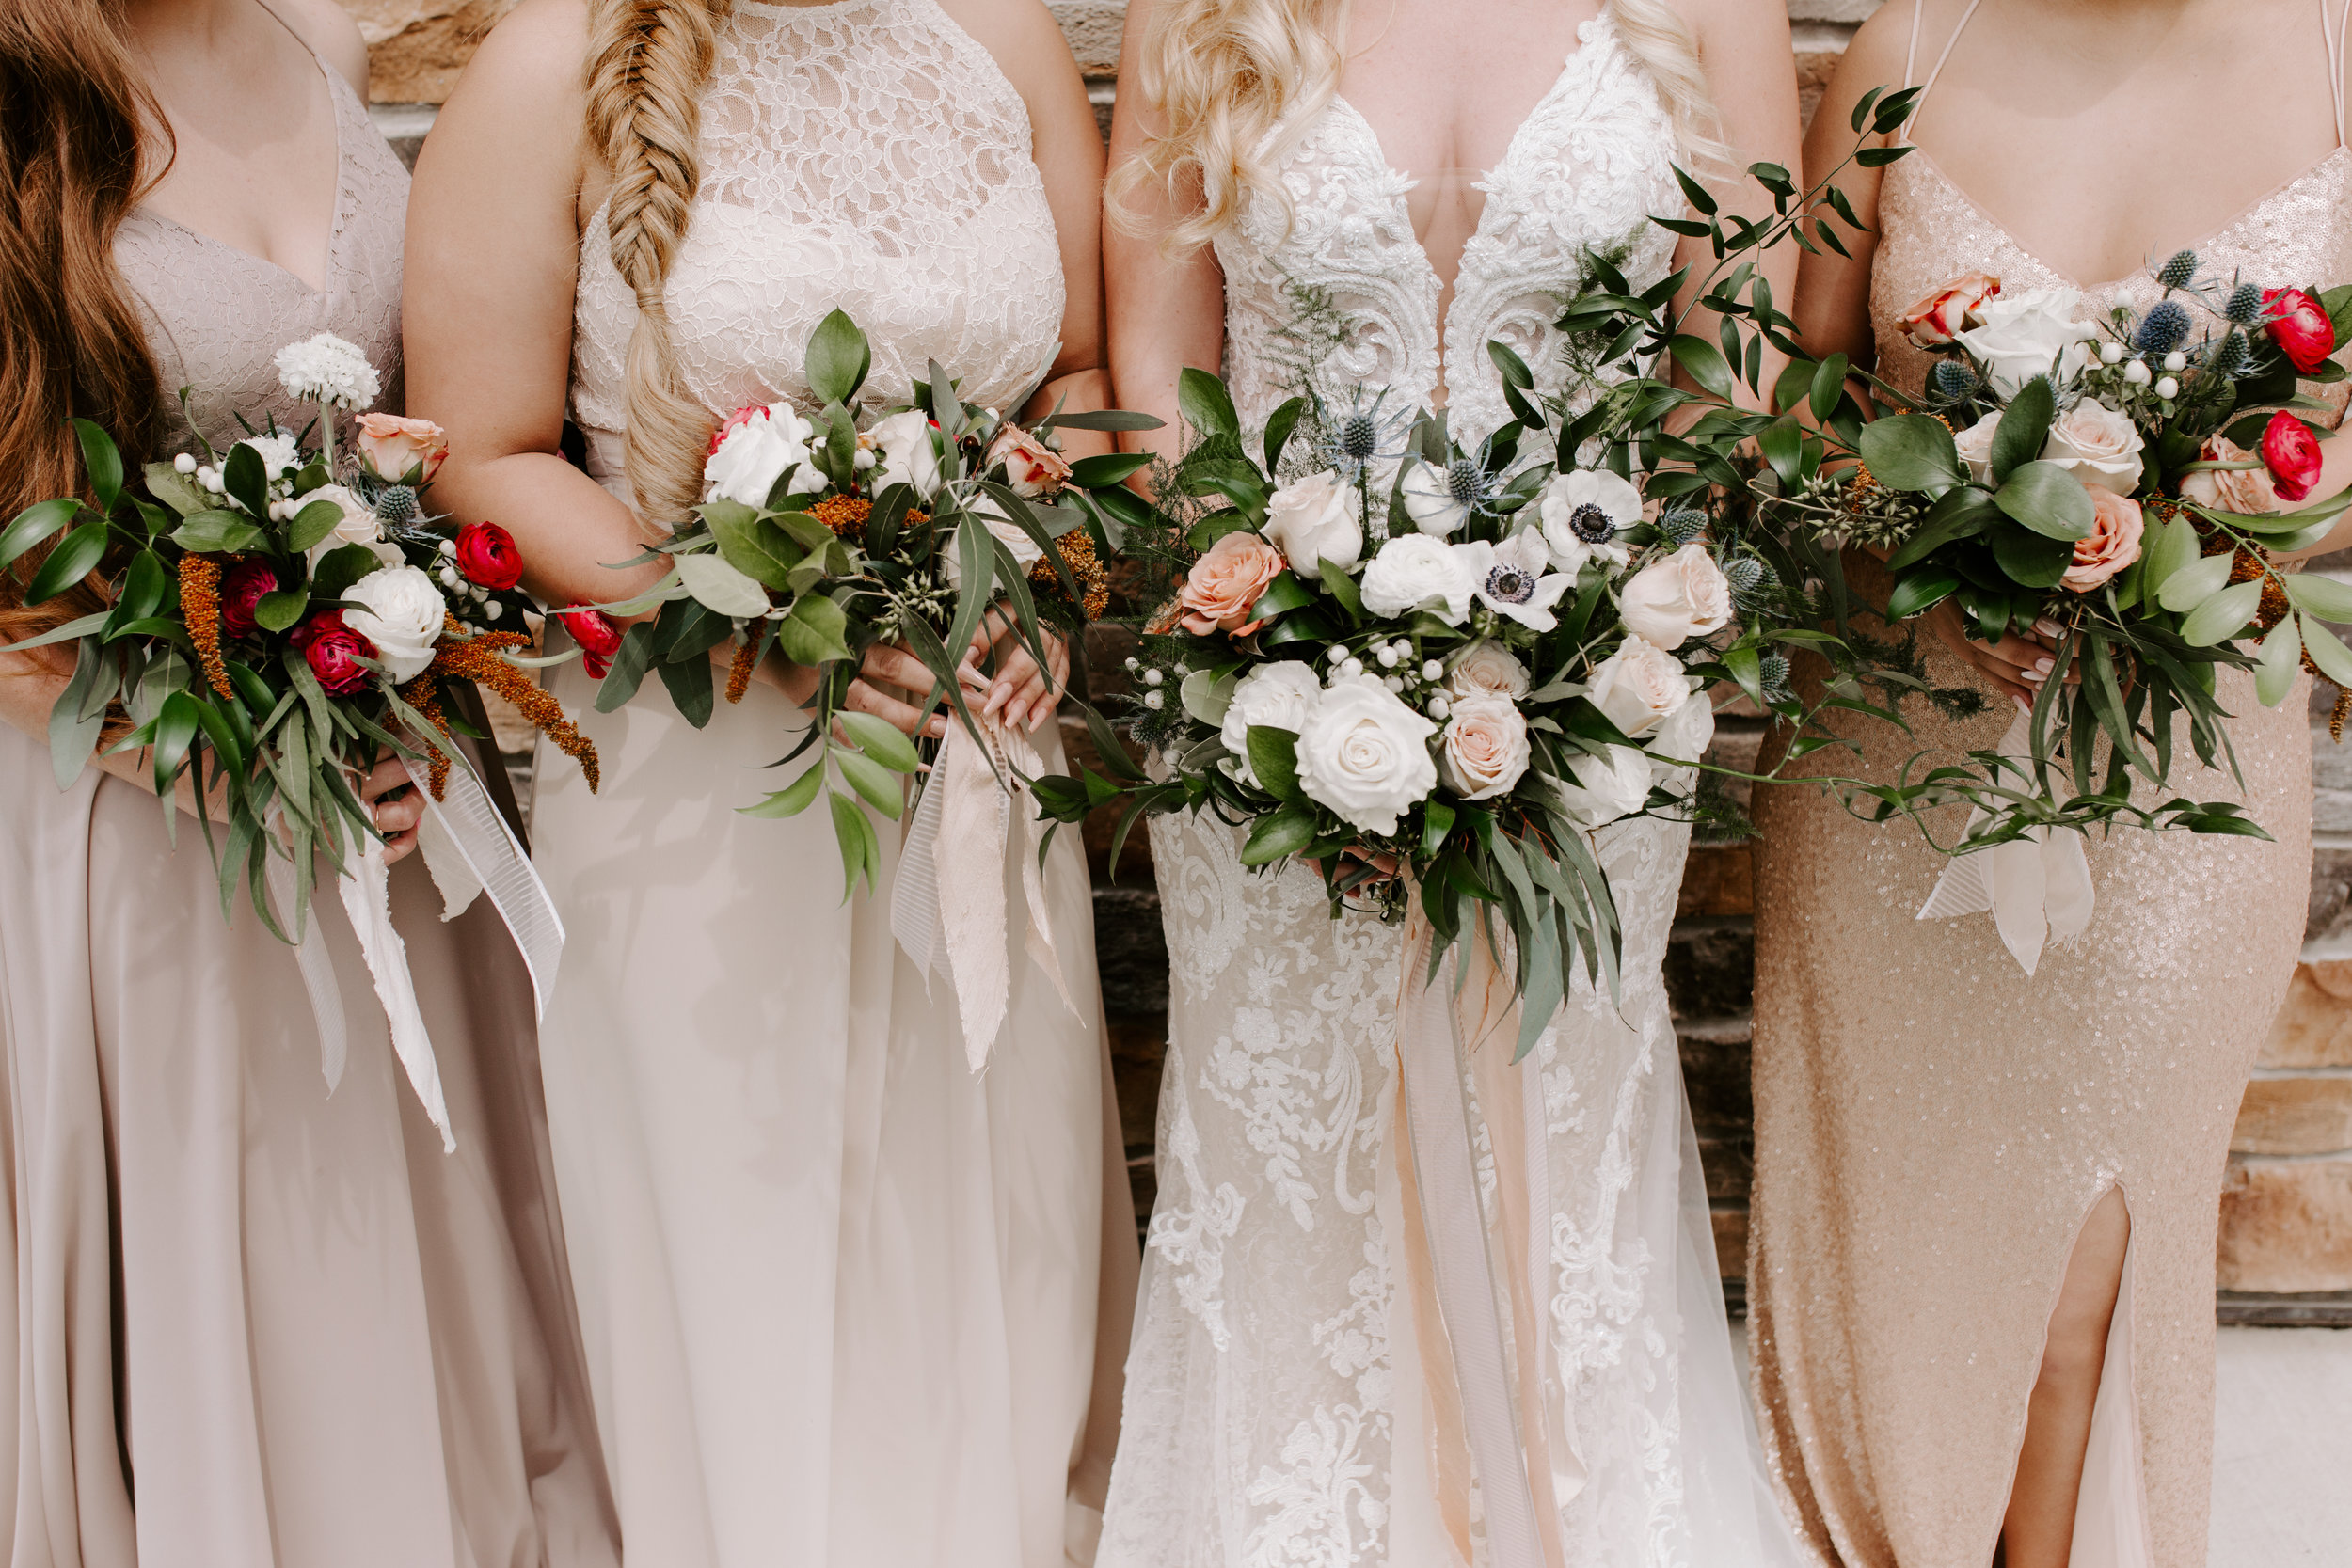 bridesmaids outside of wedding venue in Adel Iowa holding cream, white, and blush wedding bouquets, streamers of blush ribbon hanging down, bride wearing lace couture wedding gown with lace overlay and blush under tones, bridesmaids wearing blush and gold dresses